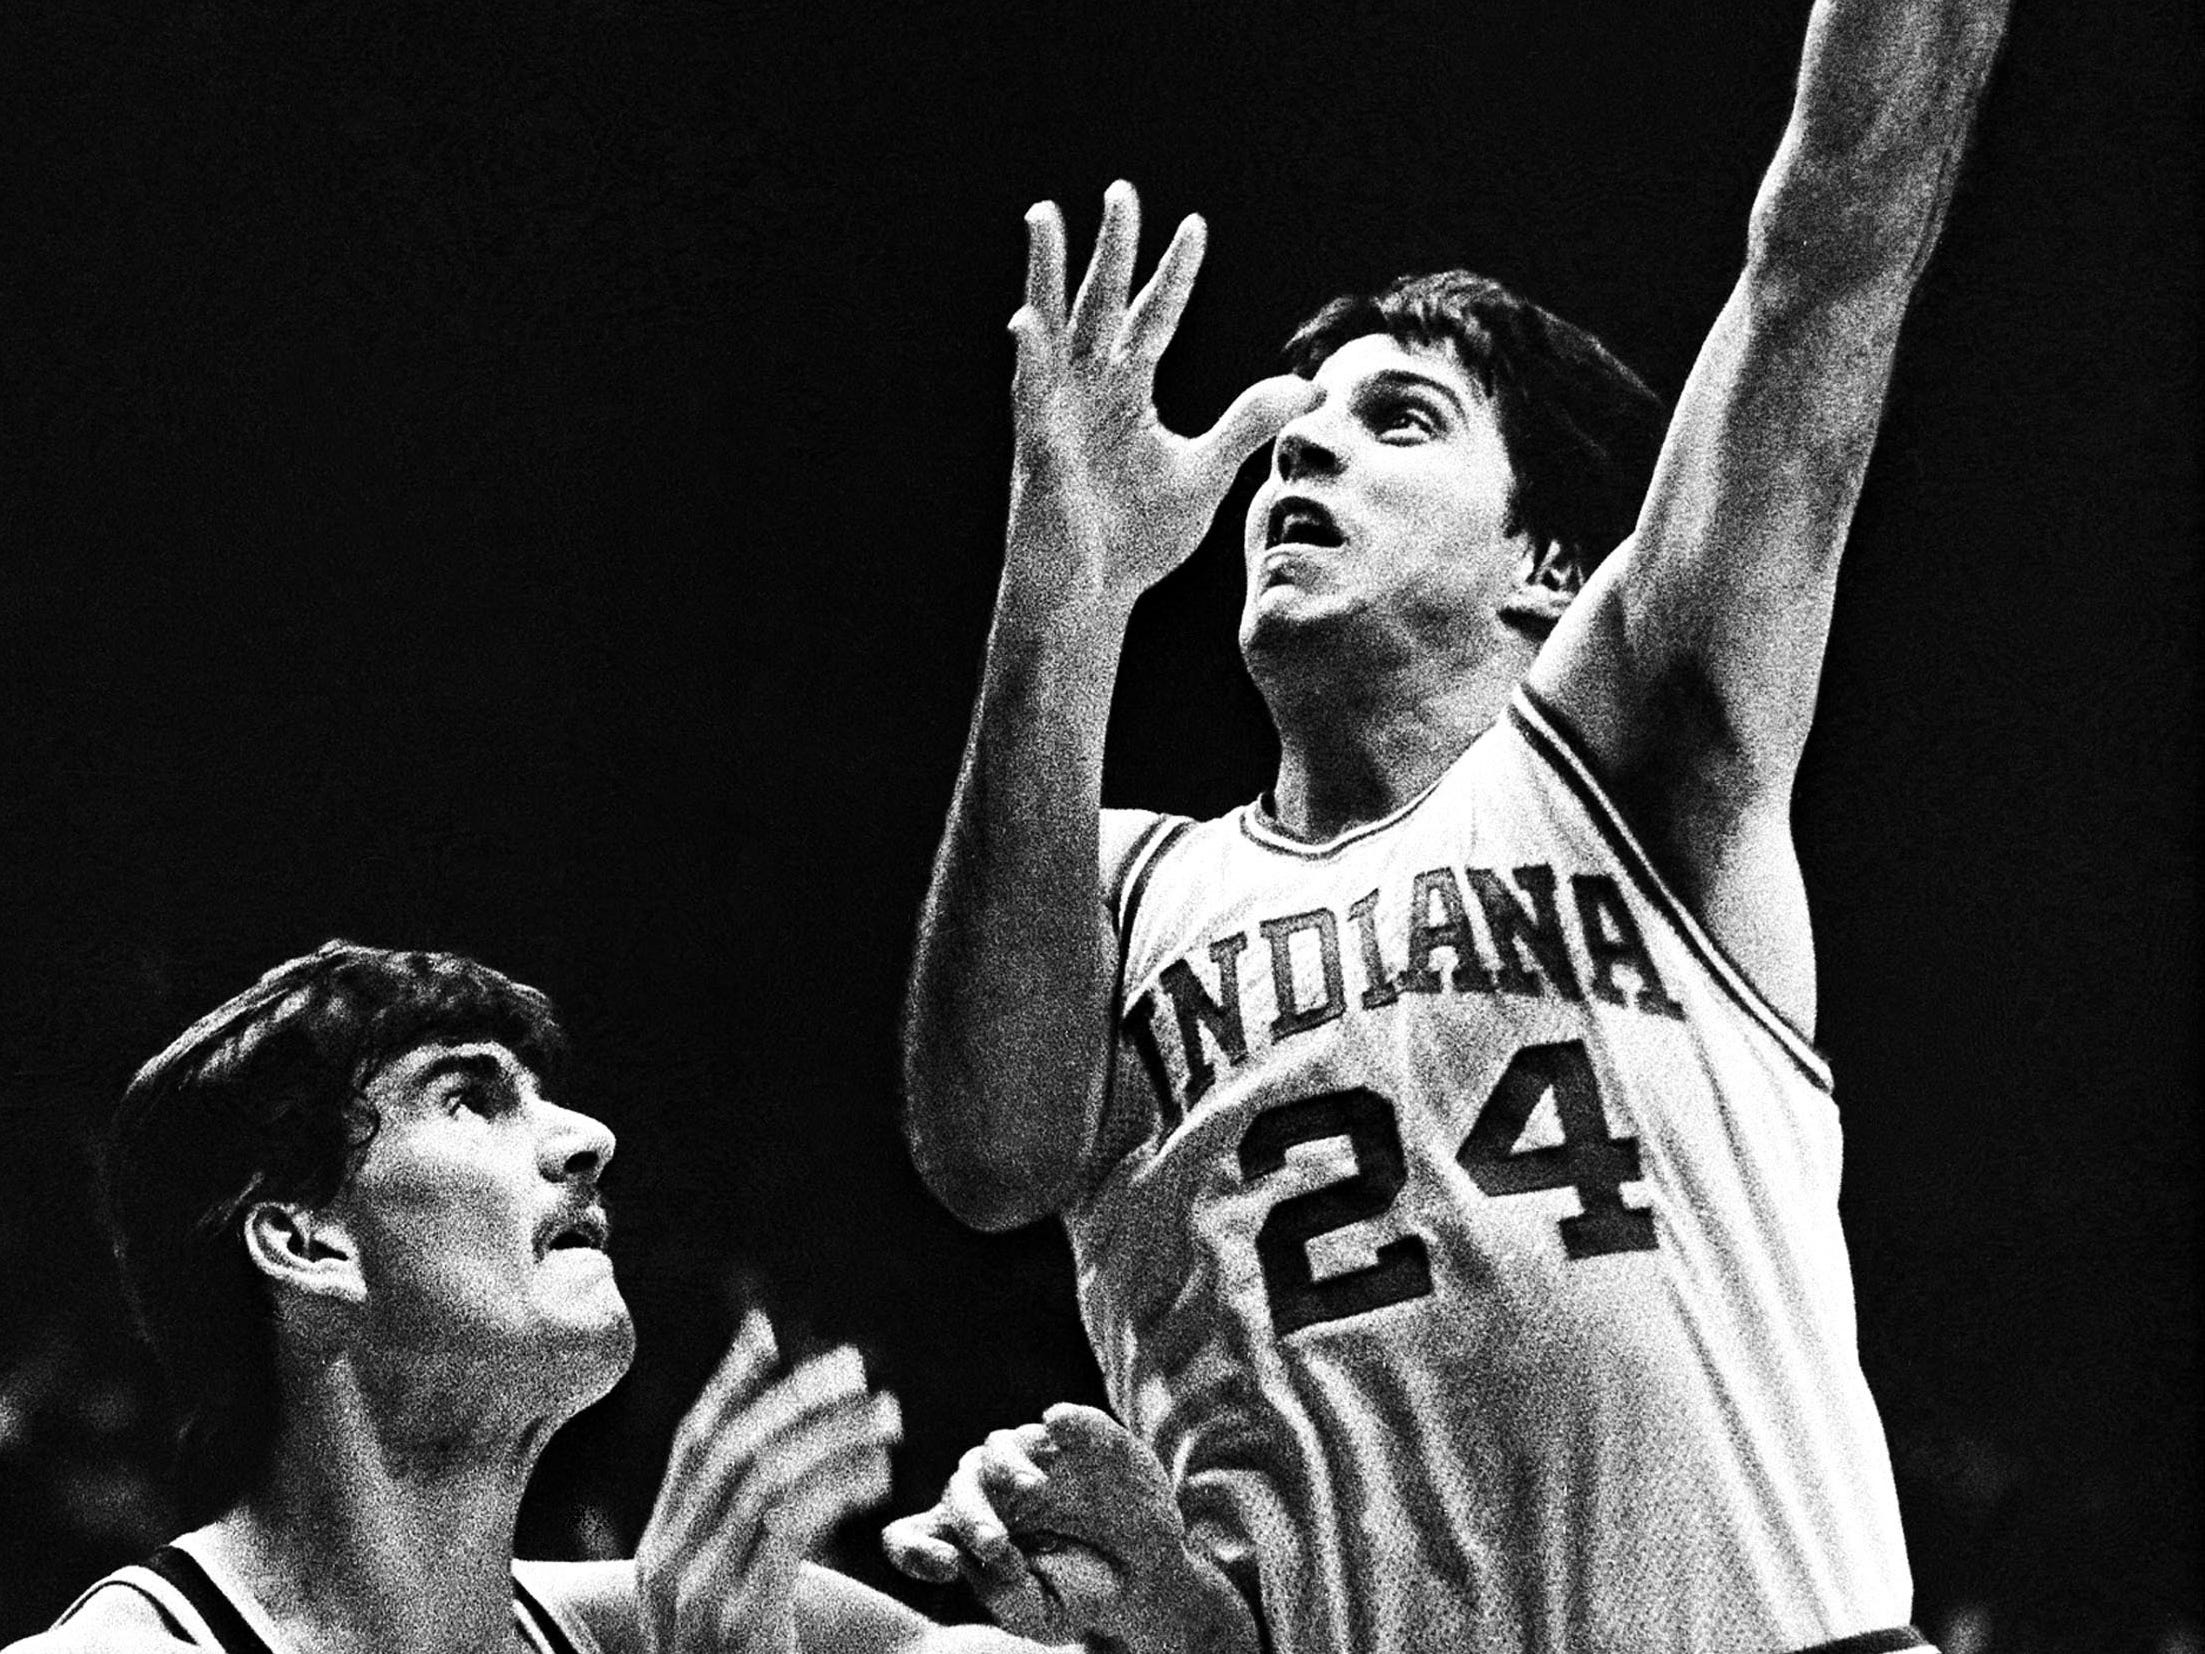 Indiana University's Randy Wittman (24) sends an alley-oop shot over Wyoming's Mark Wrapp (50) during first half action in the championship match of the Indiana Classic basketball tournament at Assembly Hall December 11, 1982.